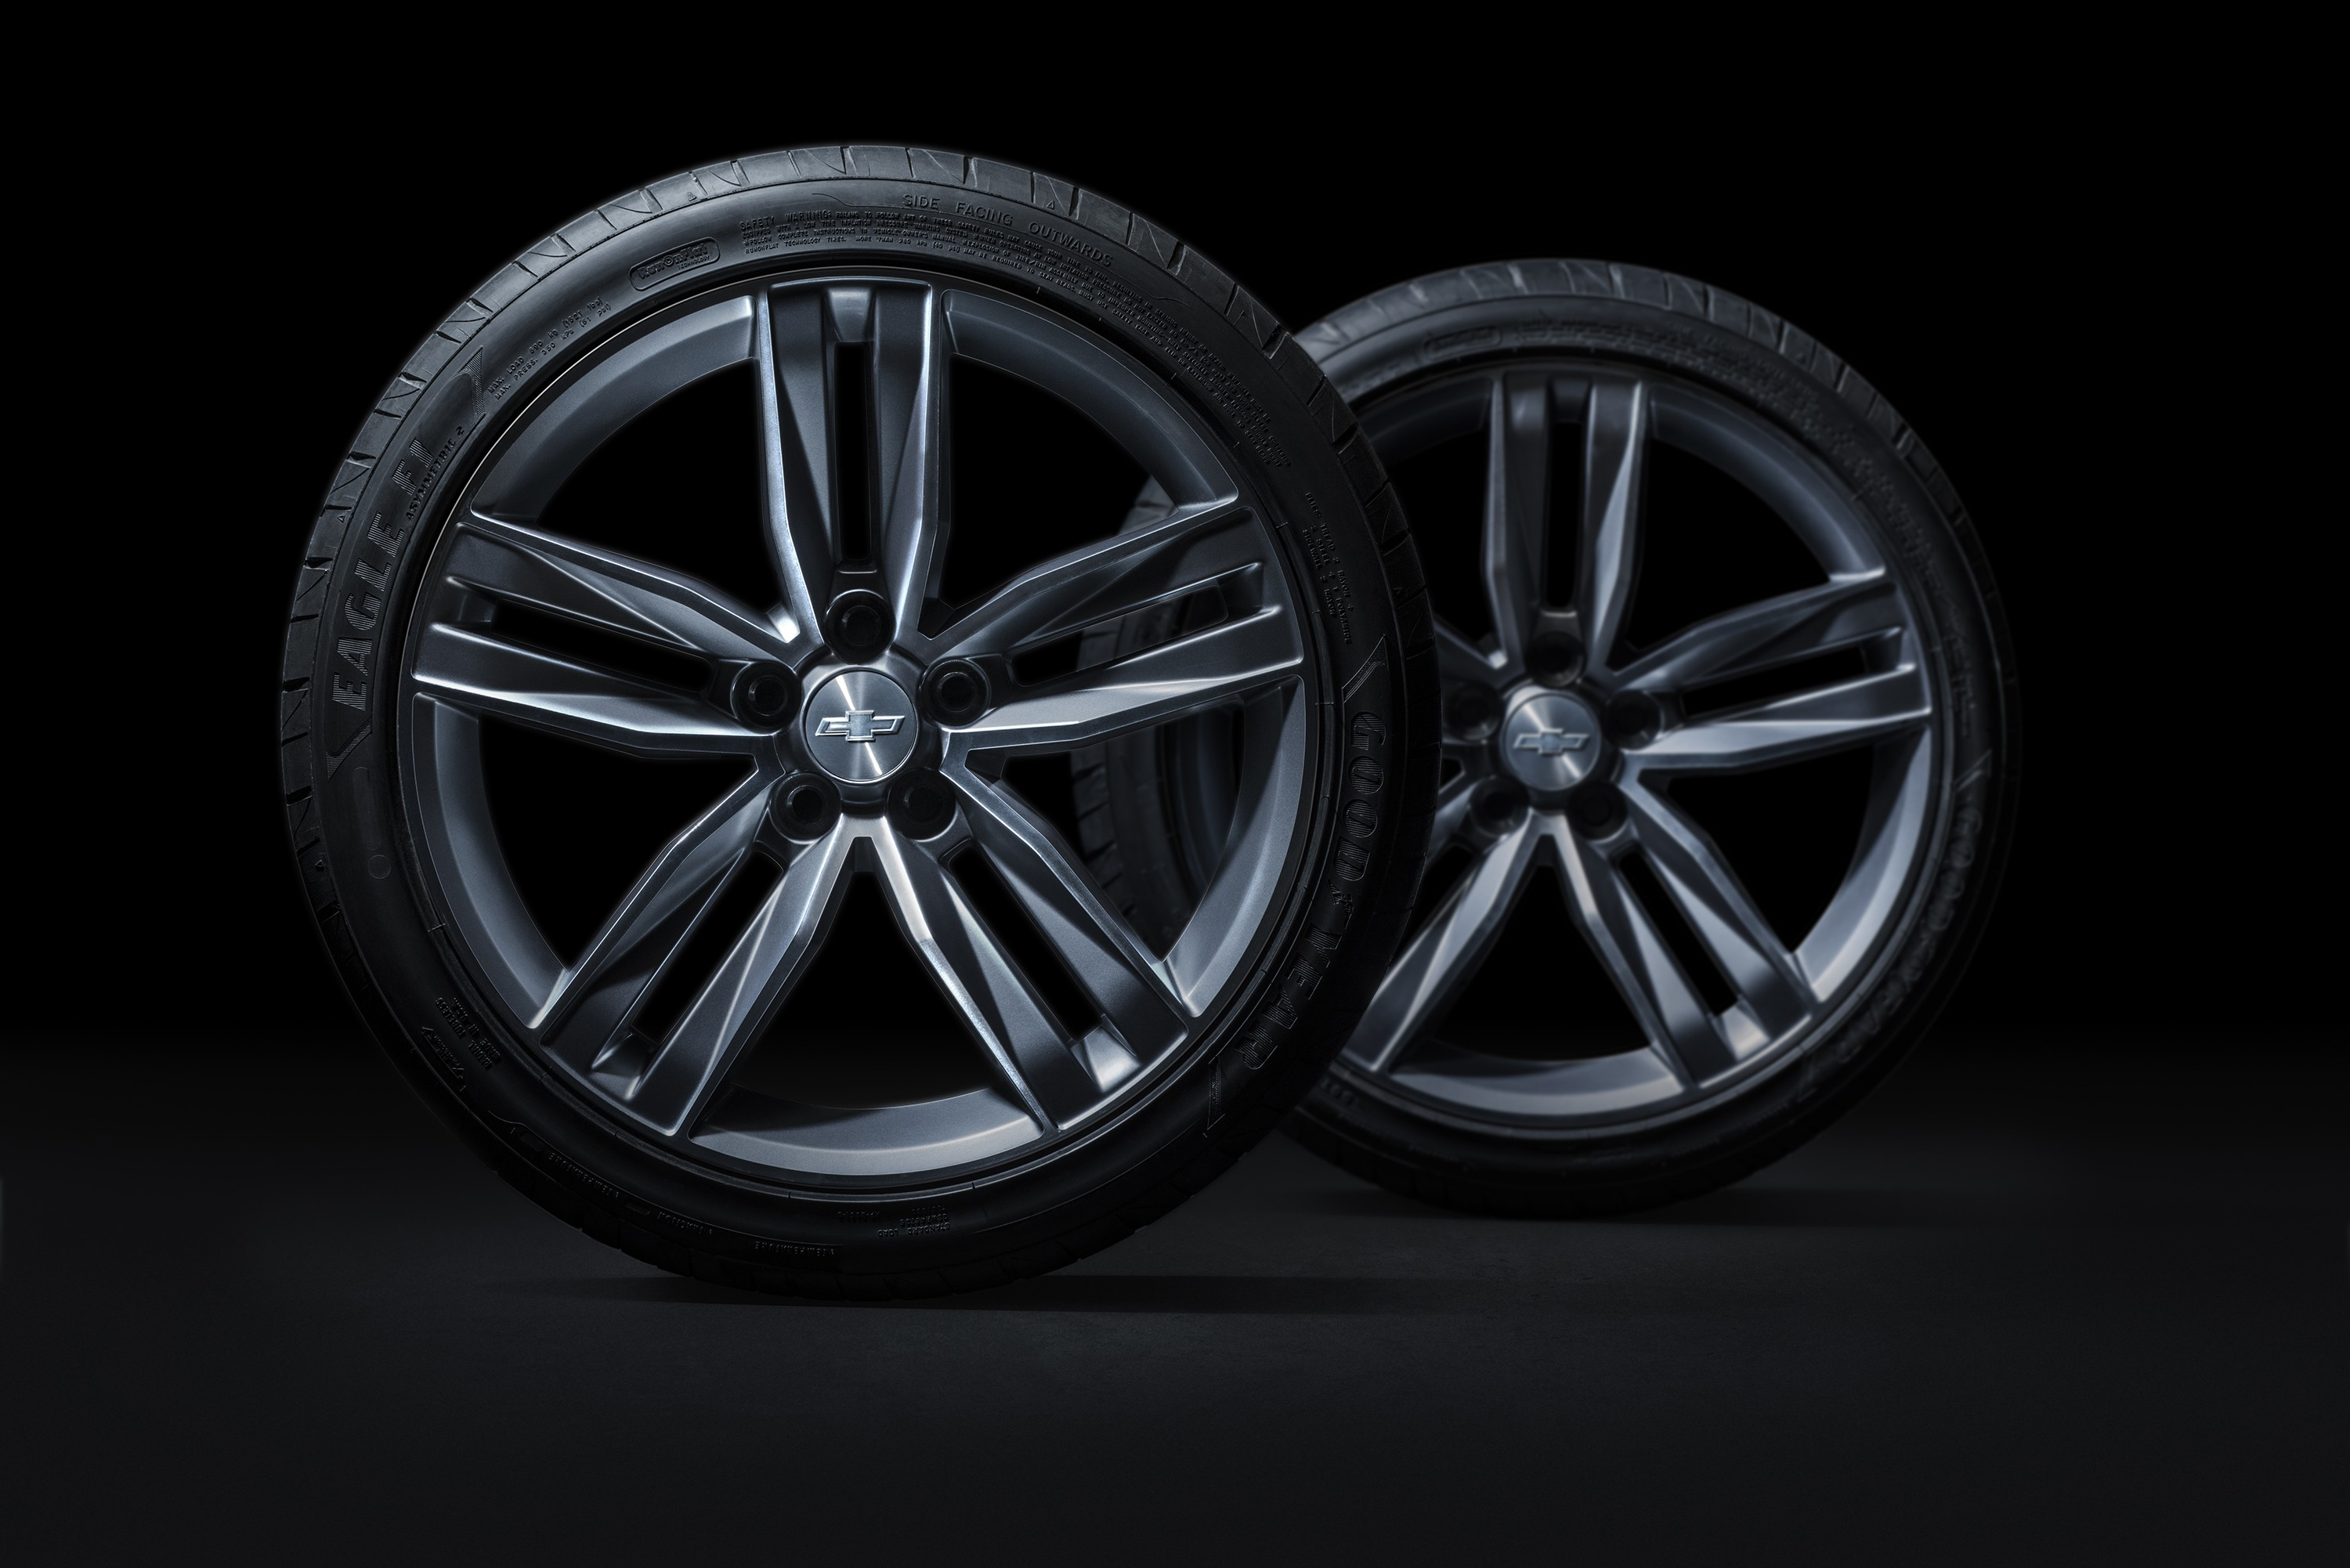 2016 Chevrolet Camaro Teaser Here Are The Wheels Tires